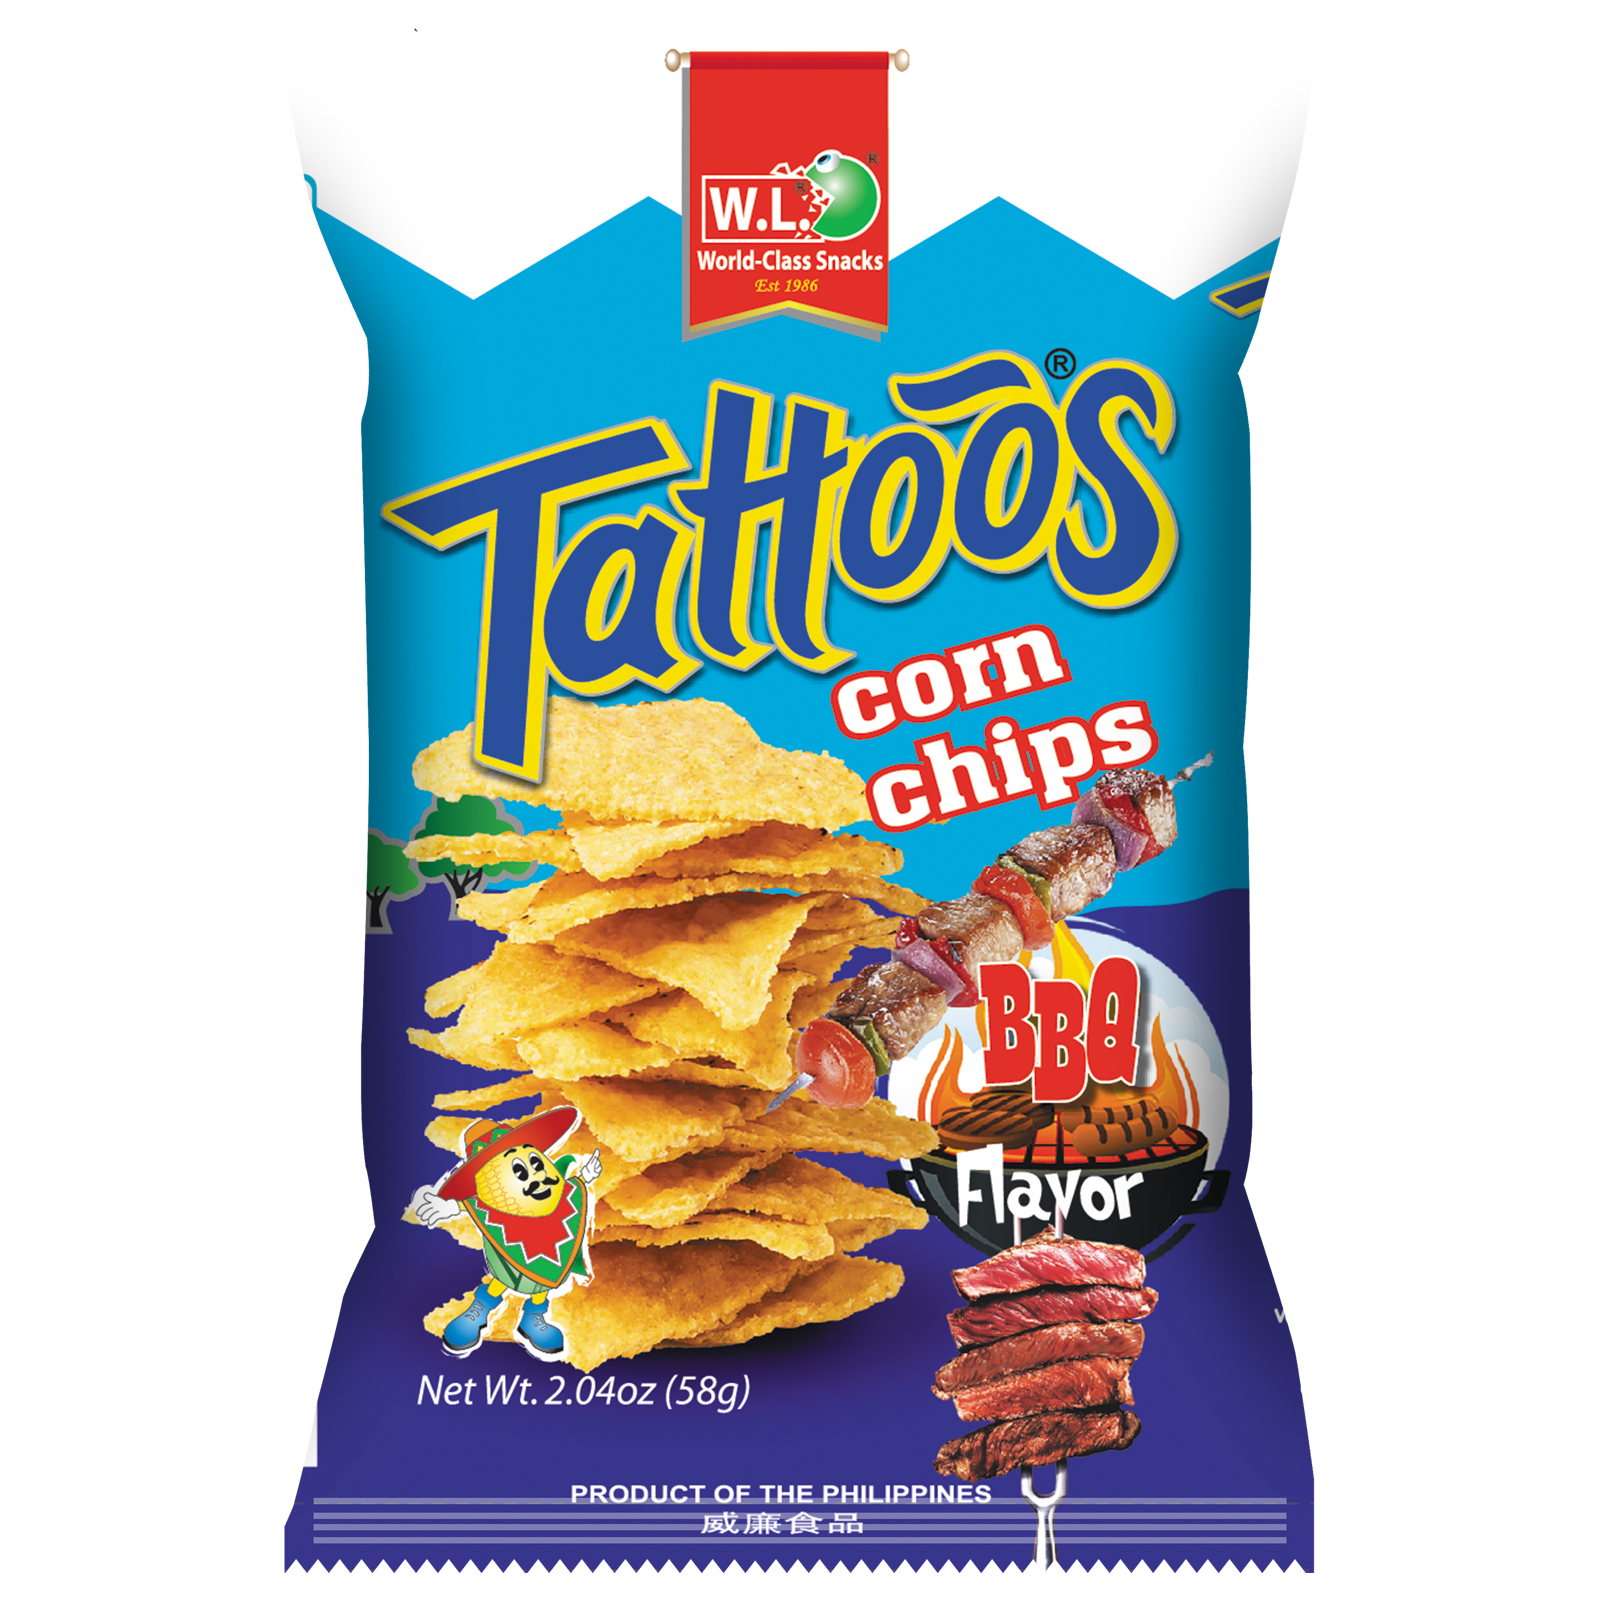 Tattoos Corn Chips BBQ Flavor 58g